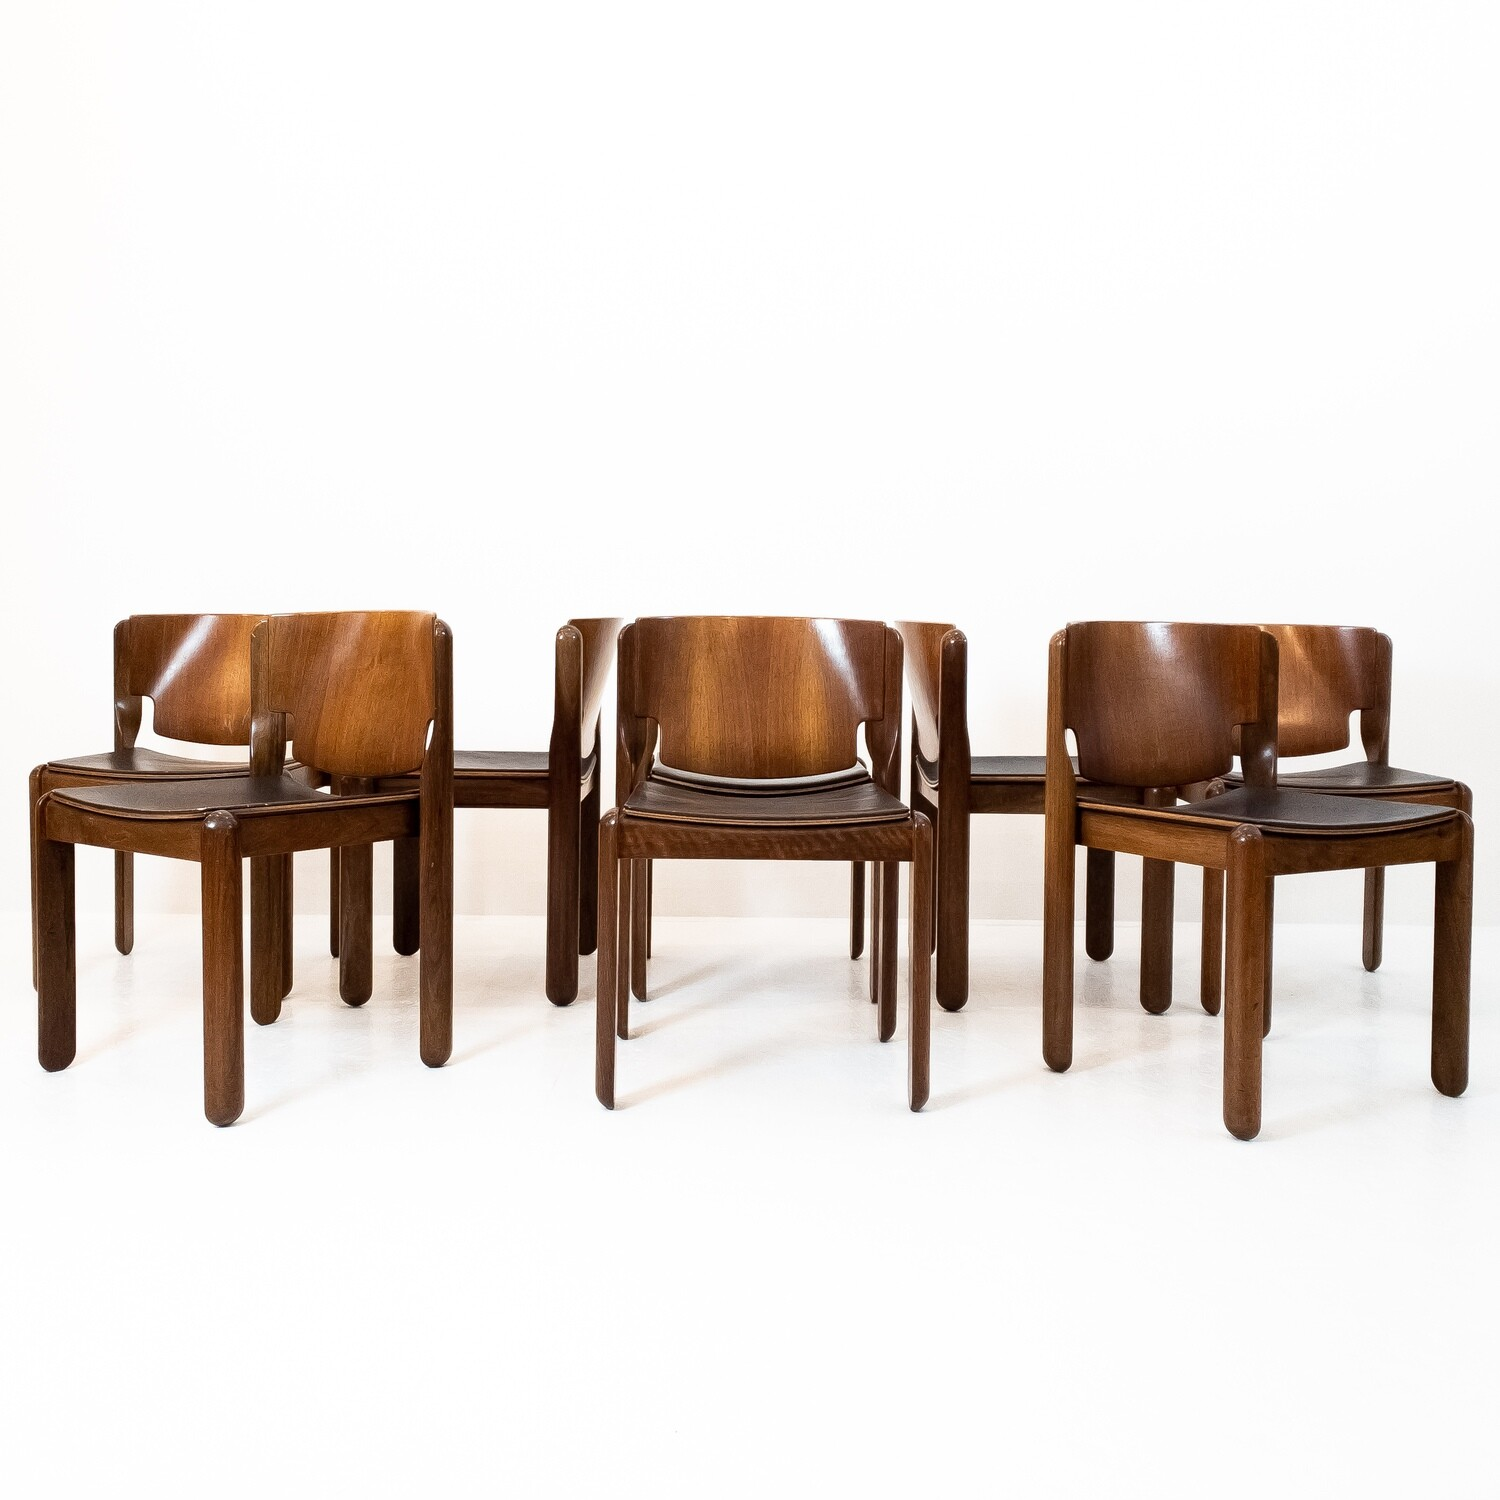 Set of 8 Chairs 122 Vico Magistretti for Cassina 1967